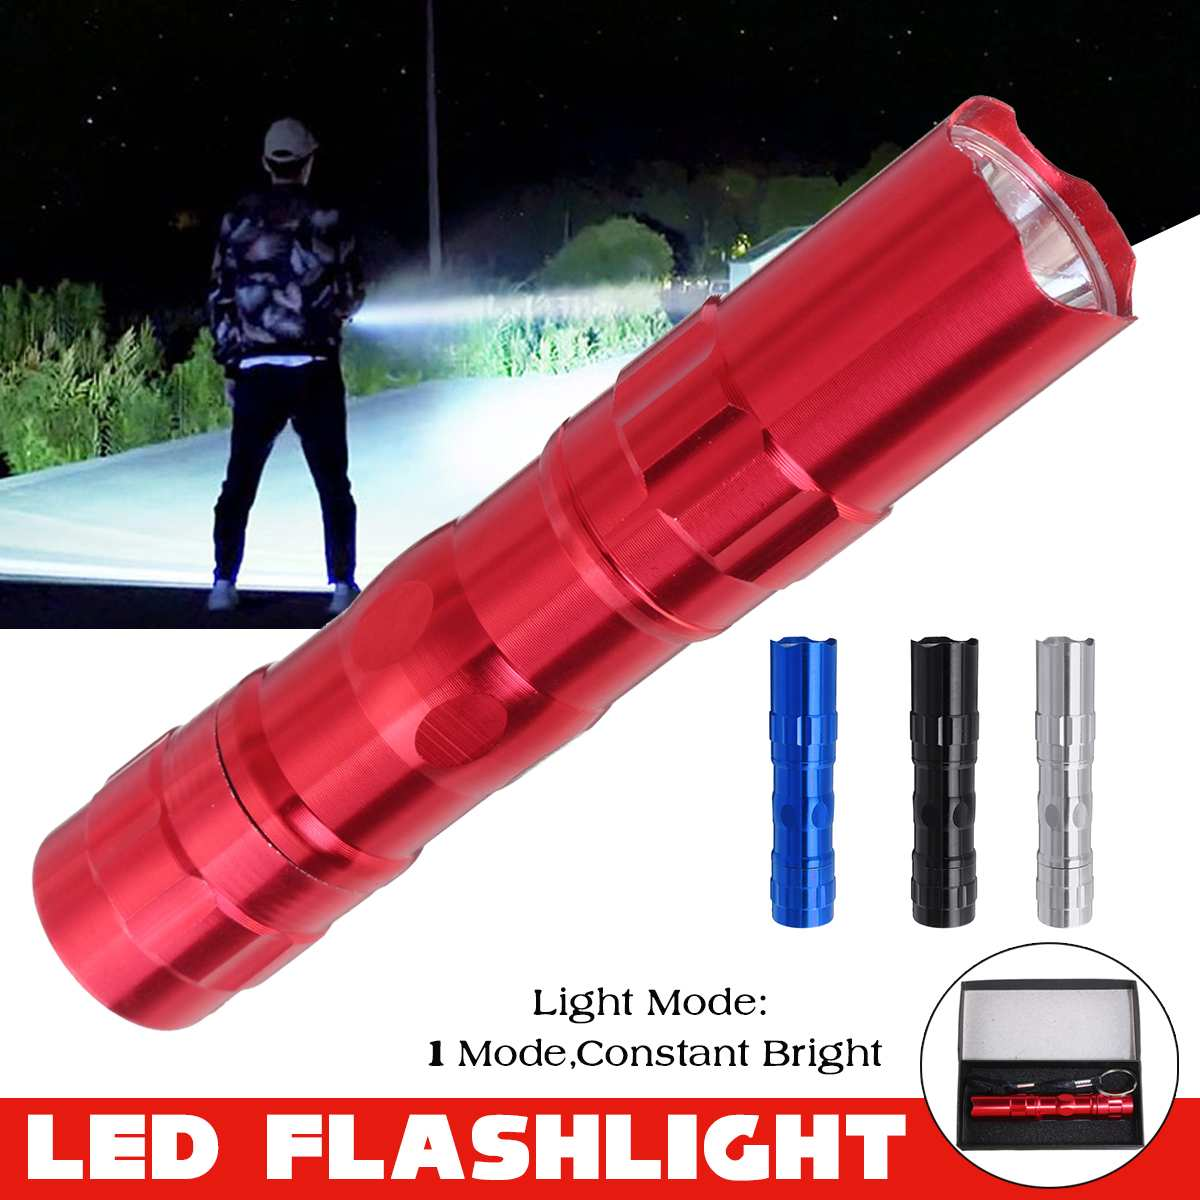 Waterproof Aluminum Mini LED Flashlights Portable Flash Light Camping Light Torch Pocket Light Waterproof Bicycle Lamp Outdoor